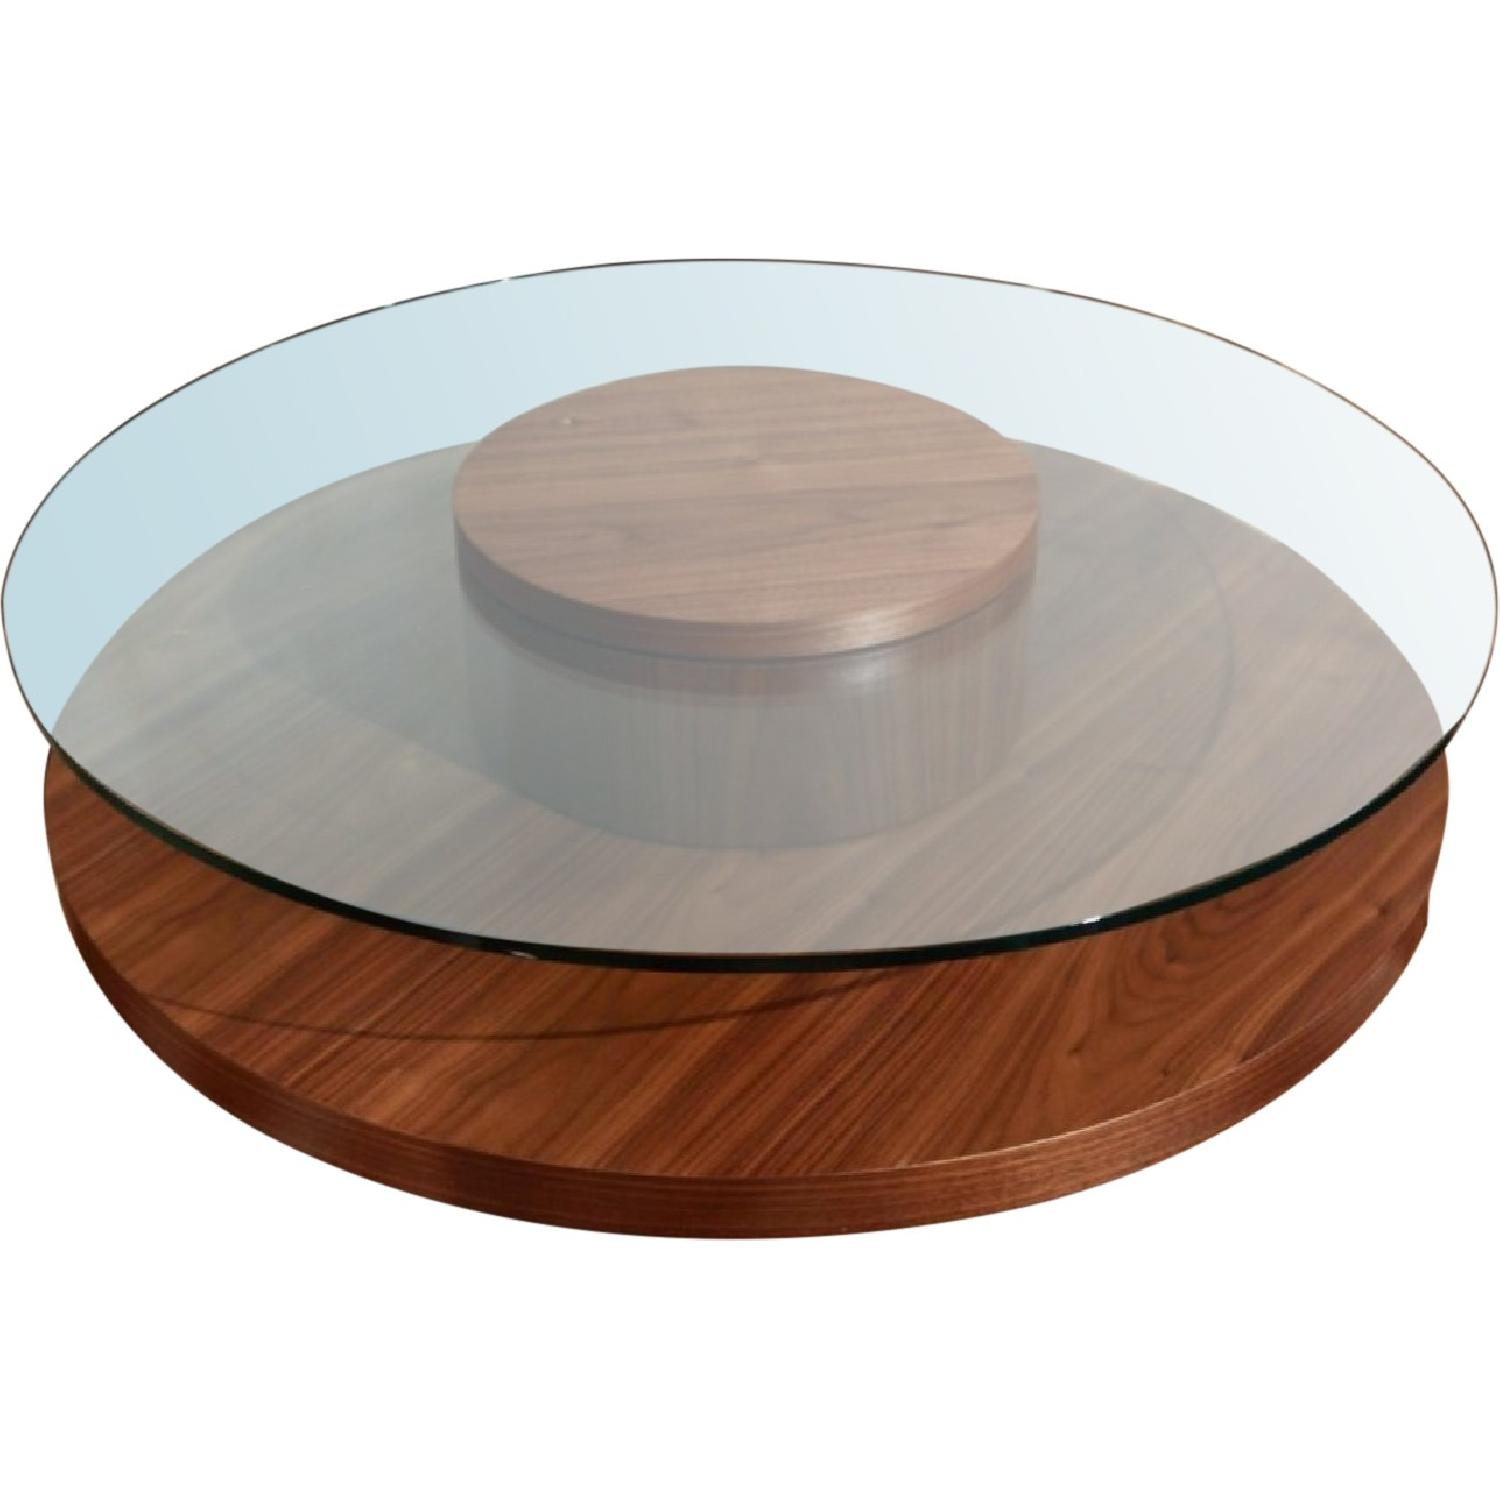 Contemporary Round Coffee Table in Walnut w/ Rotating Glass Top